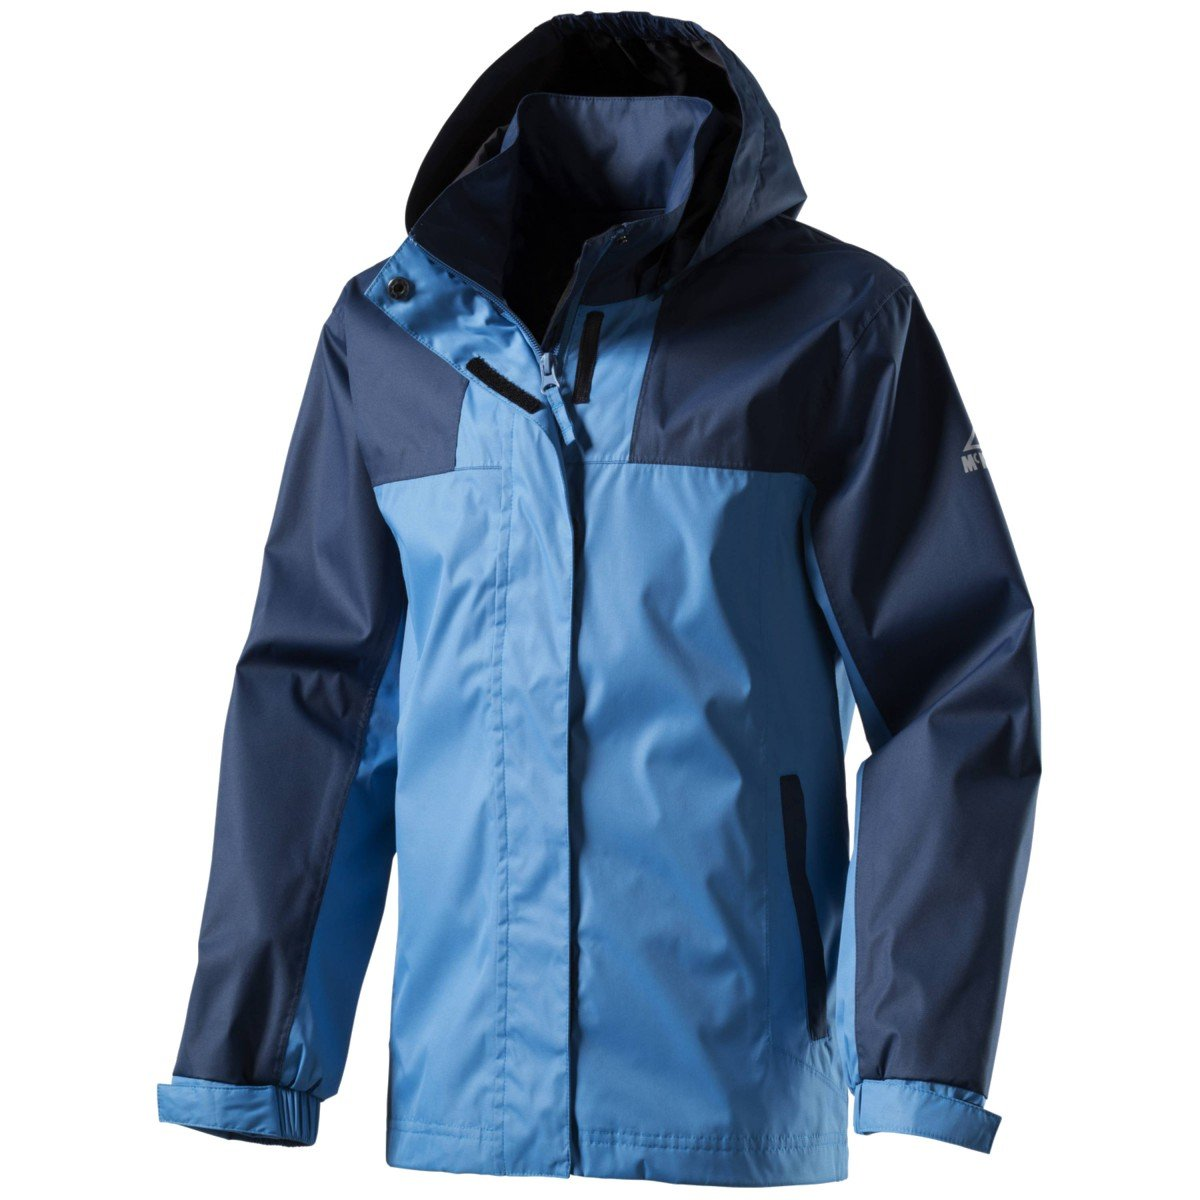 K-Funkt-Jacke Dell Velley – blue/faience bestellen